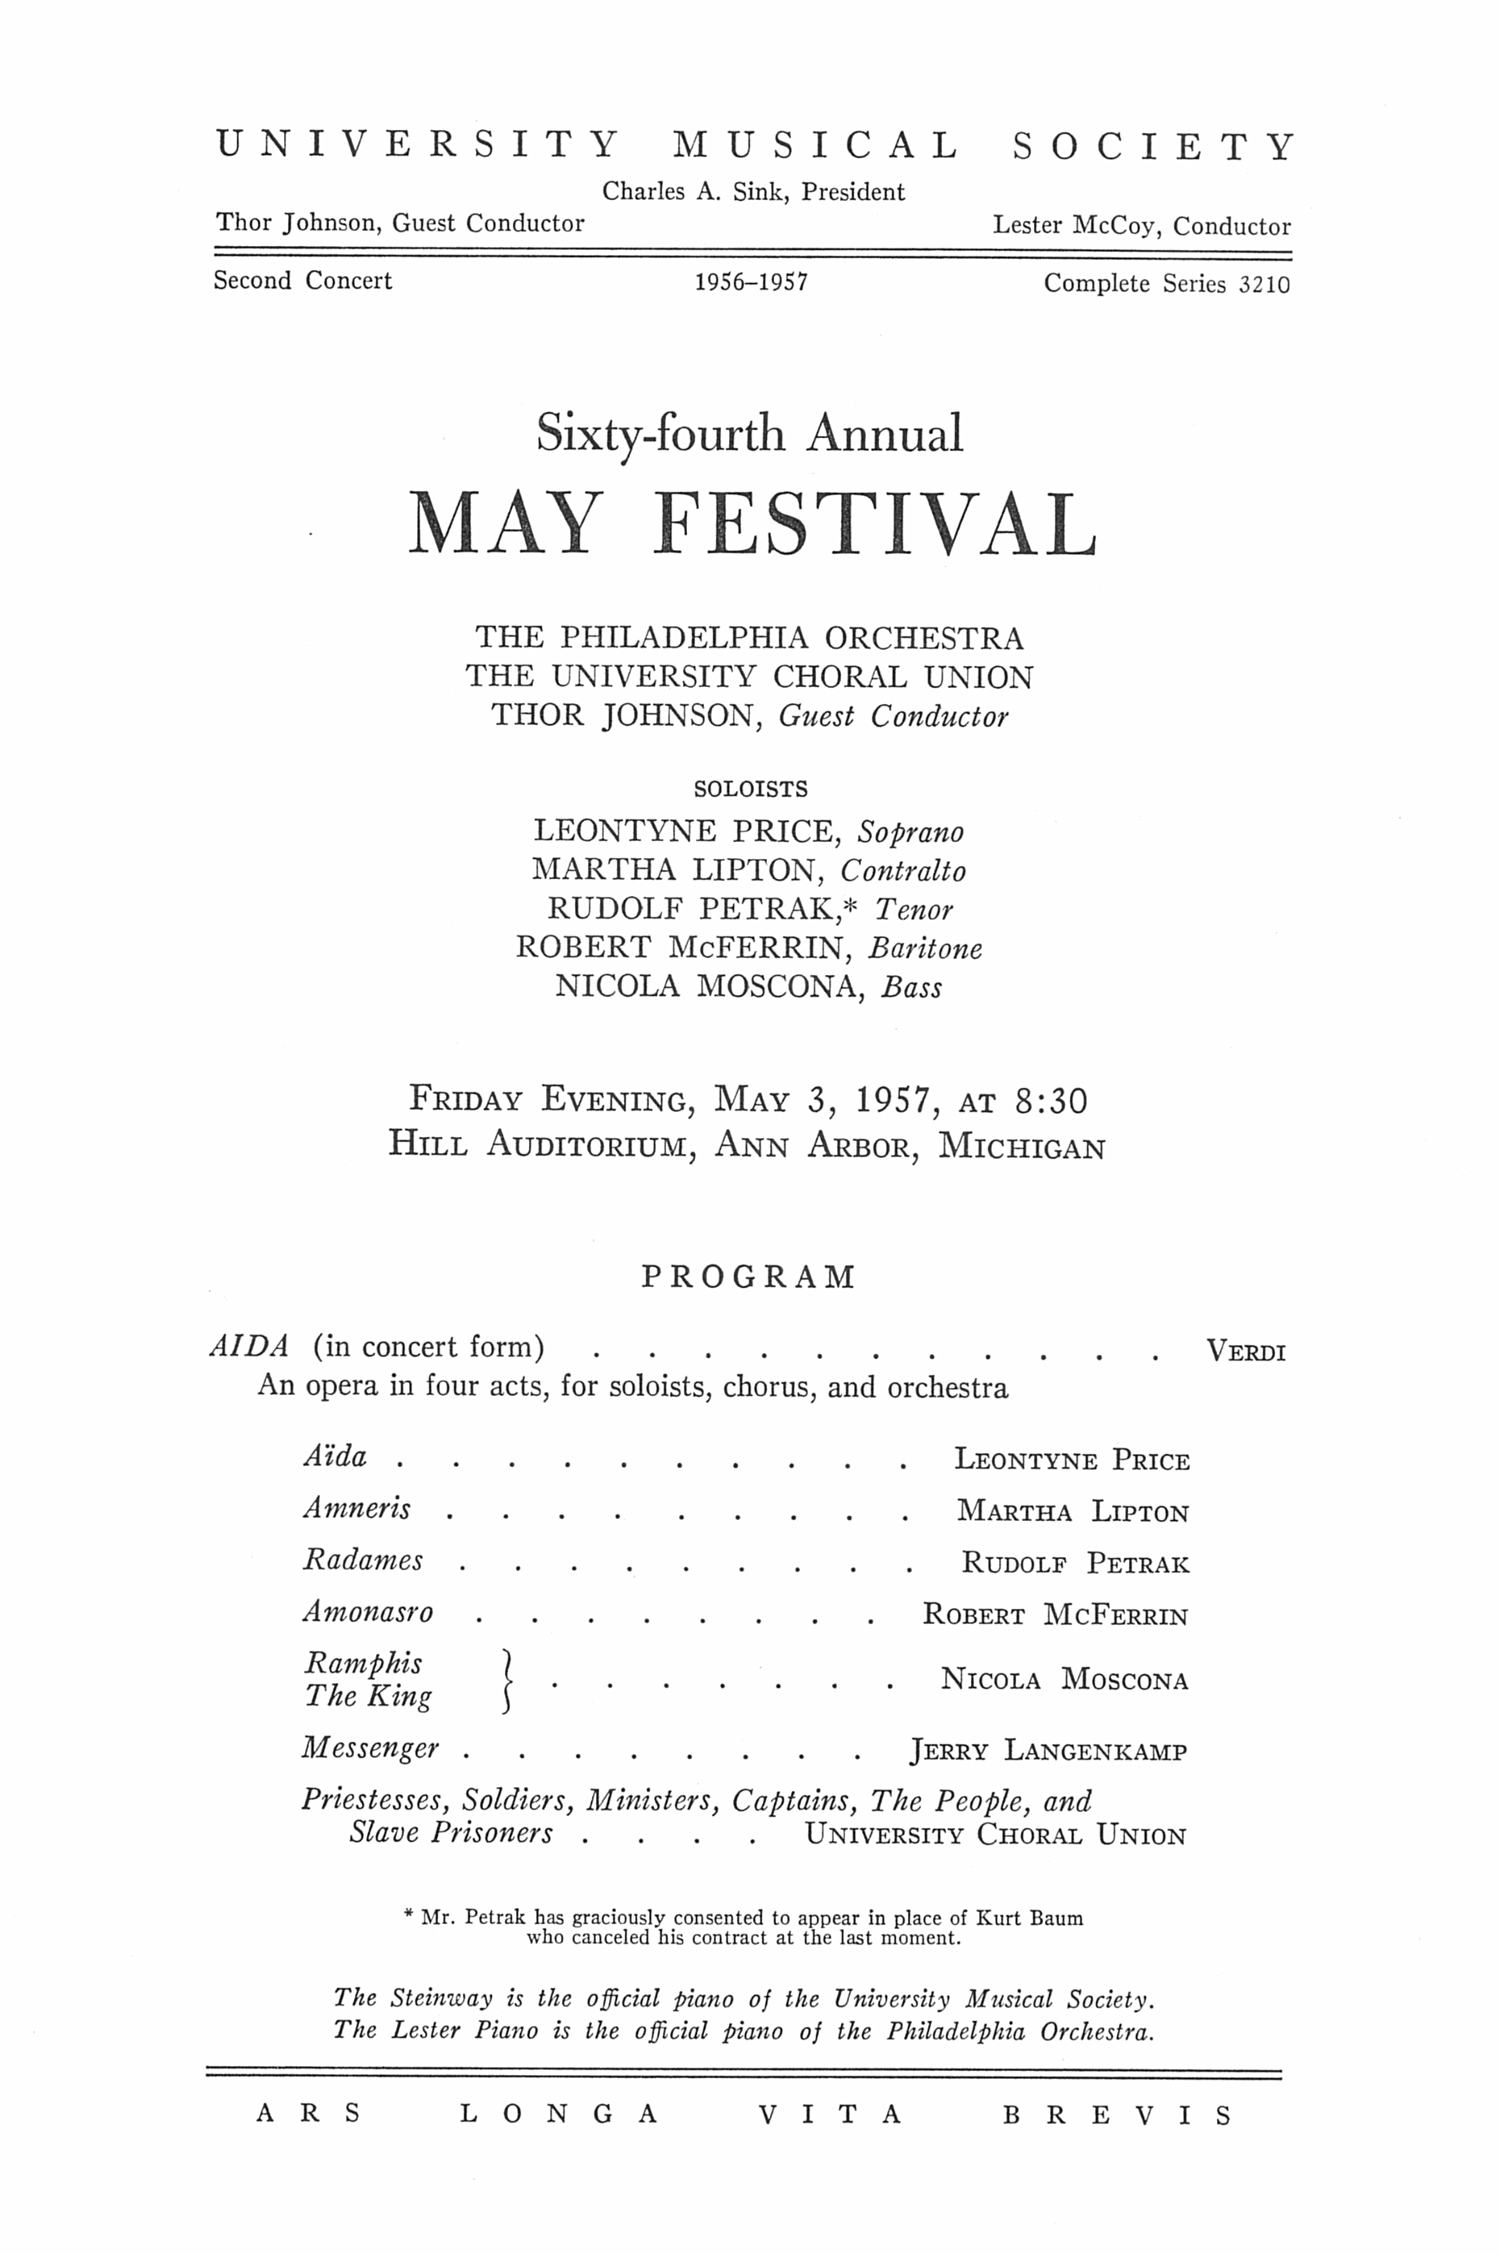 UMS Concert Program, May 3, 1957: Sixty-fourth Annual May Festival -- The Philadelphia Orchestra image